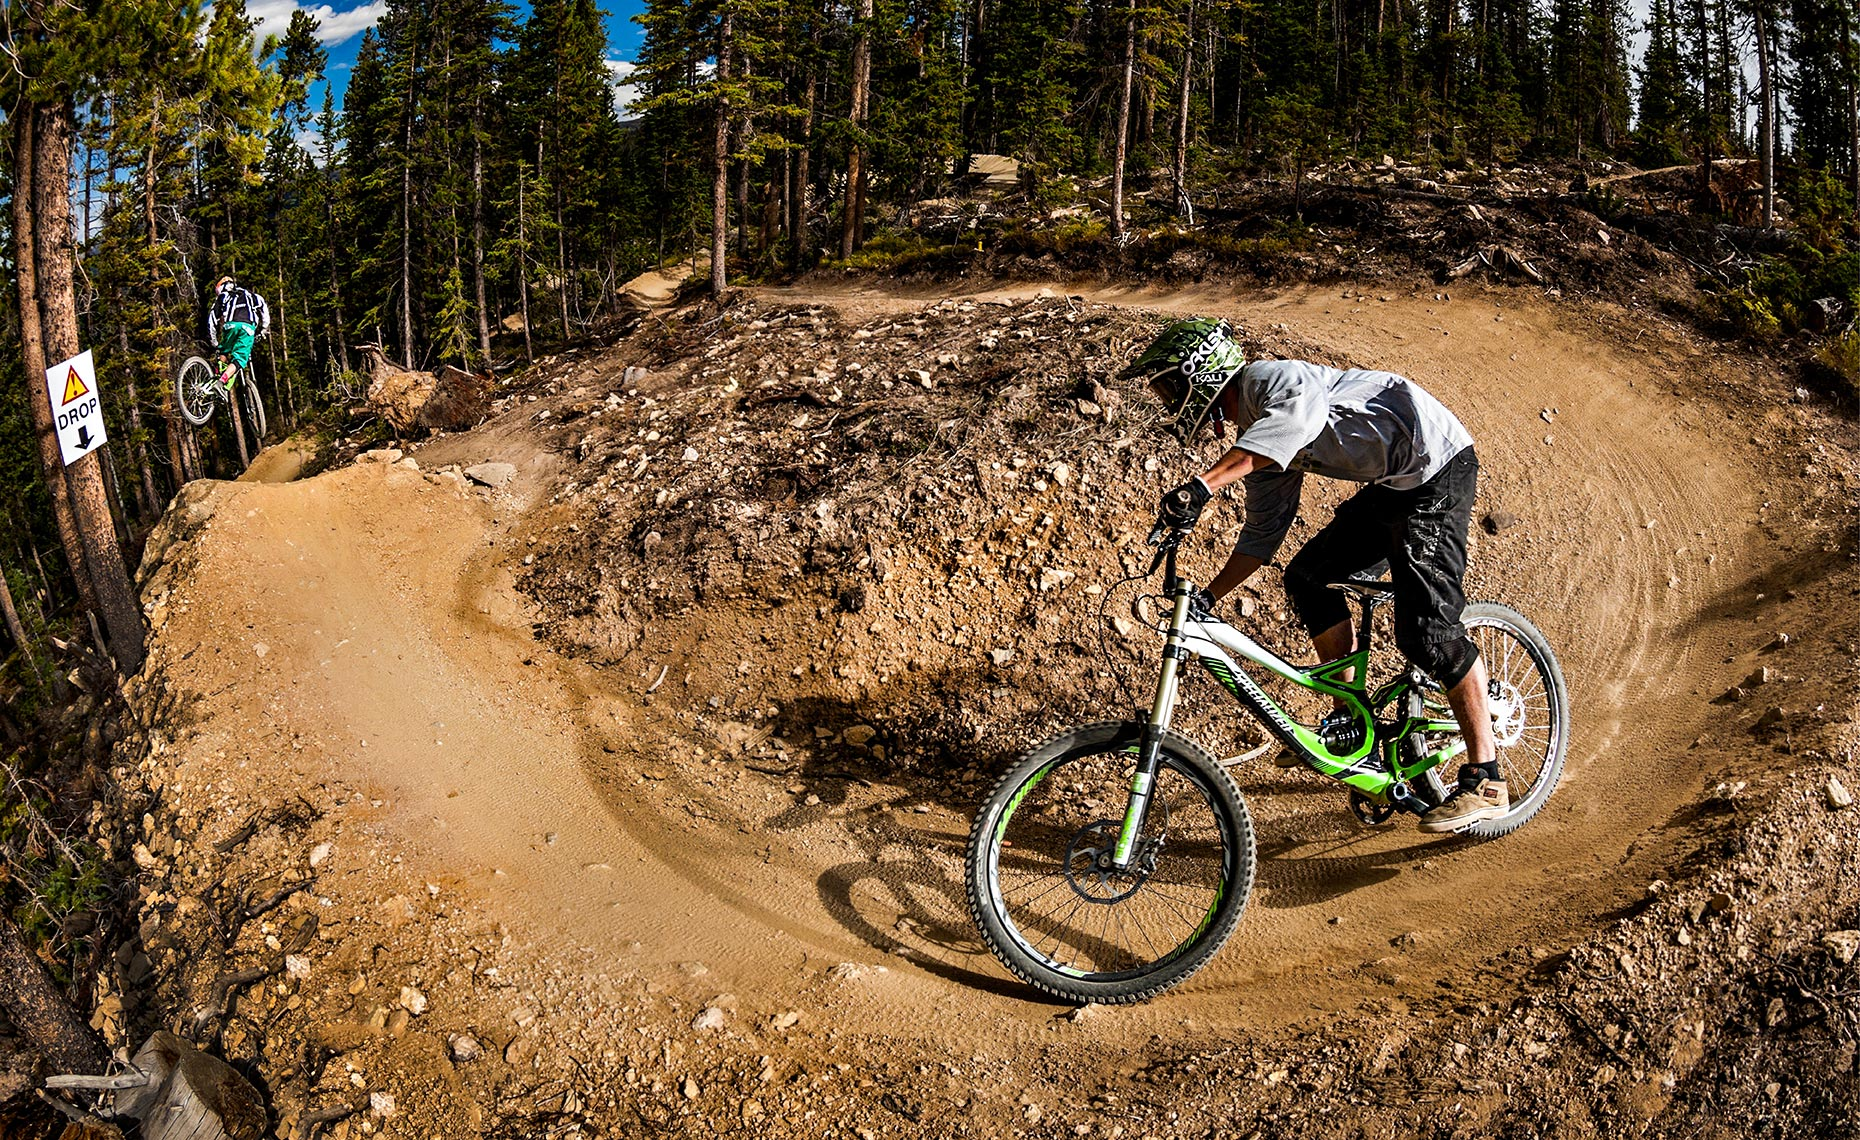 03_Andrew_McKee_Nick_Simcik_Winter_Park_Colorado_Trestle_Bike_Mountain_Biking_Chris_Wellhausen_Photography.JPG